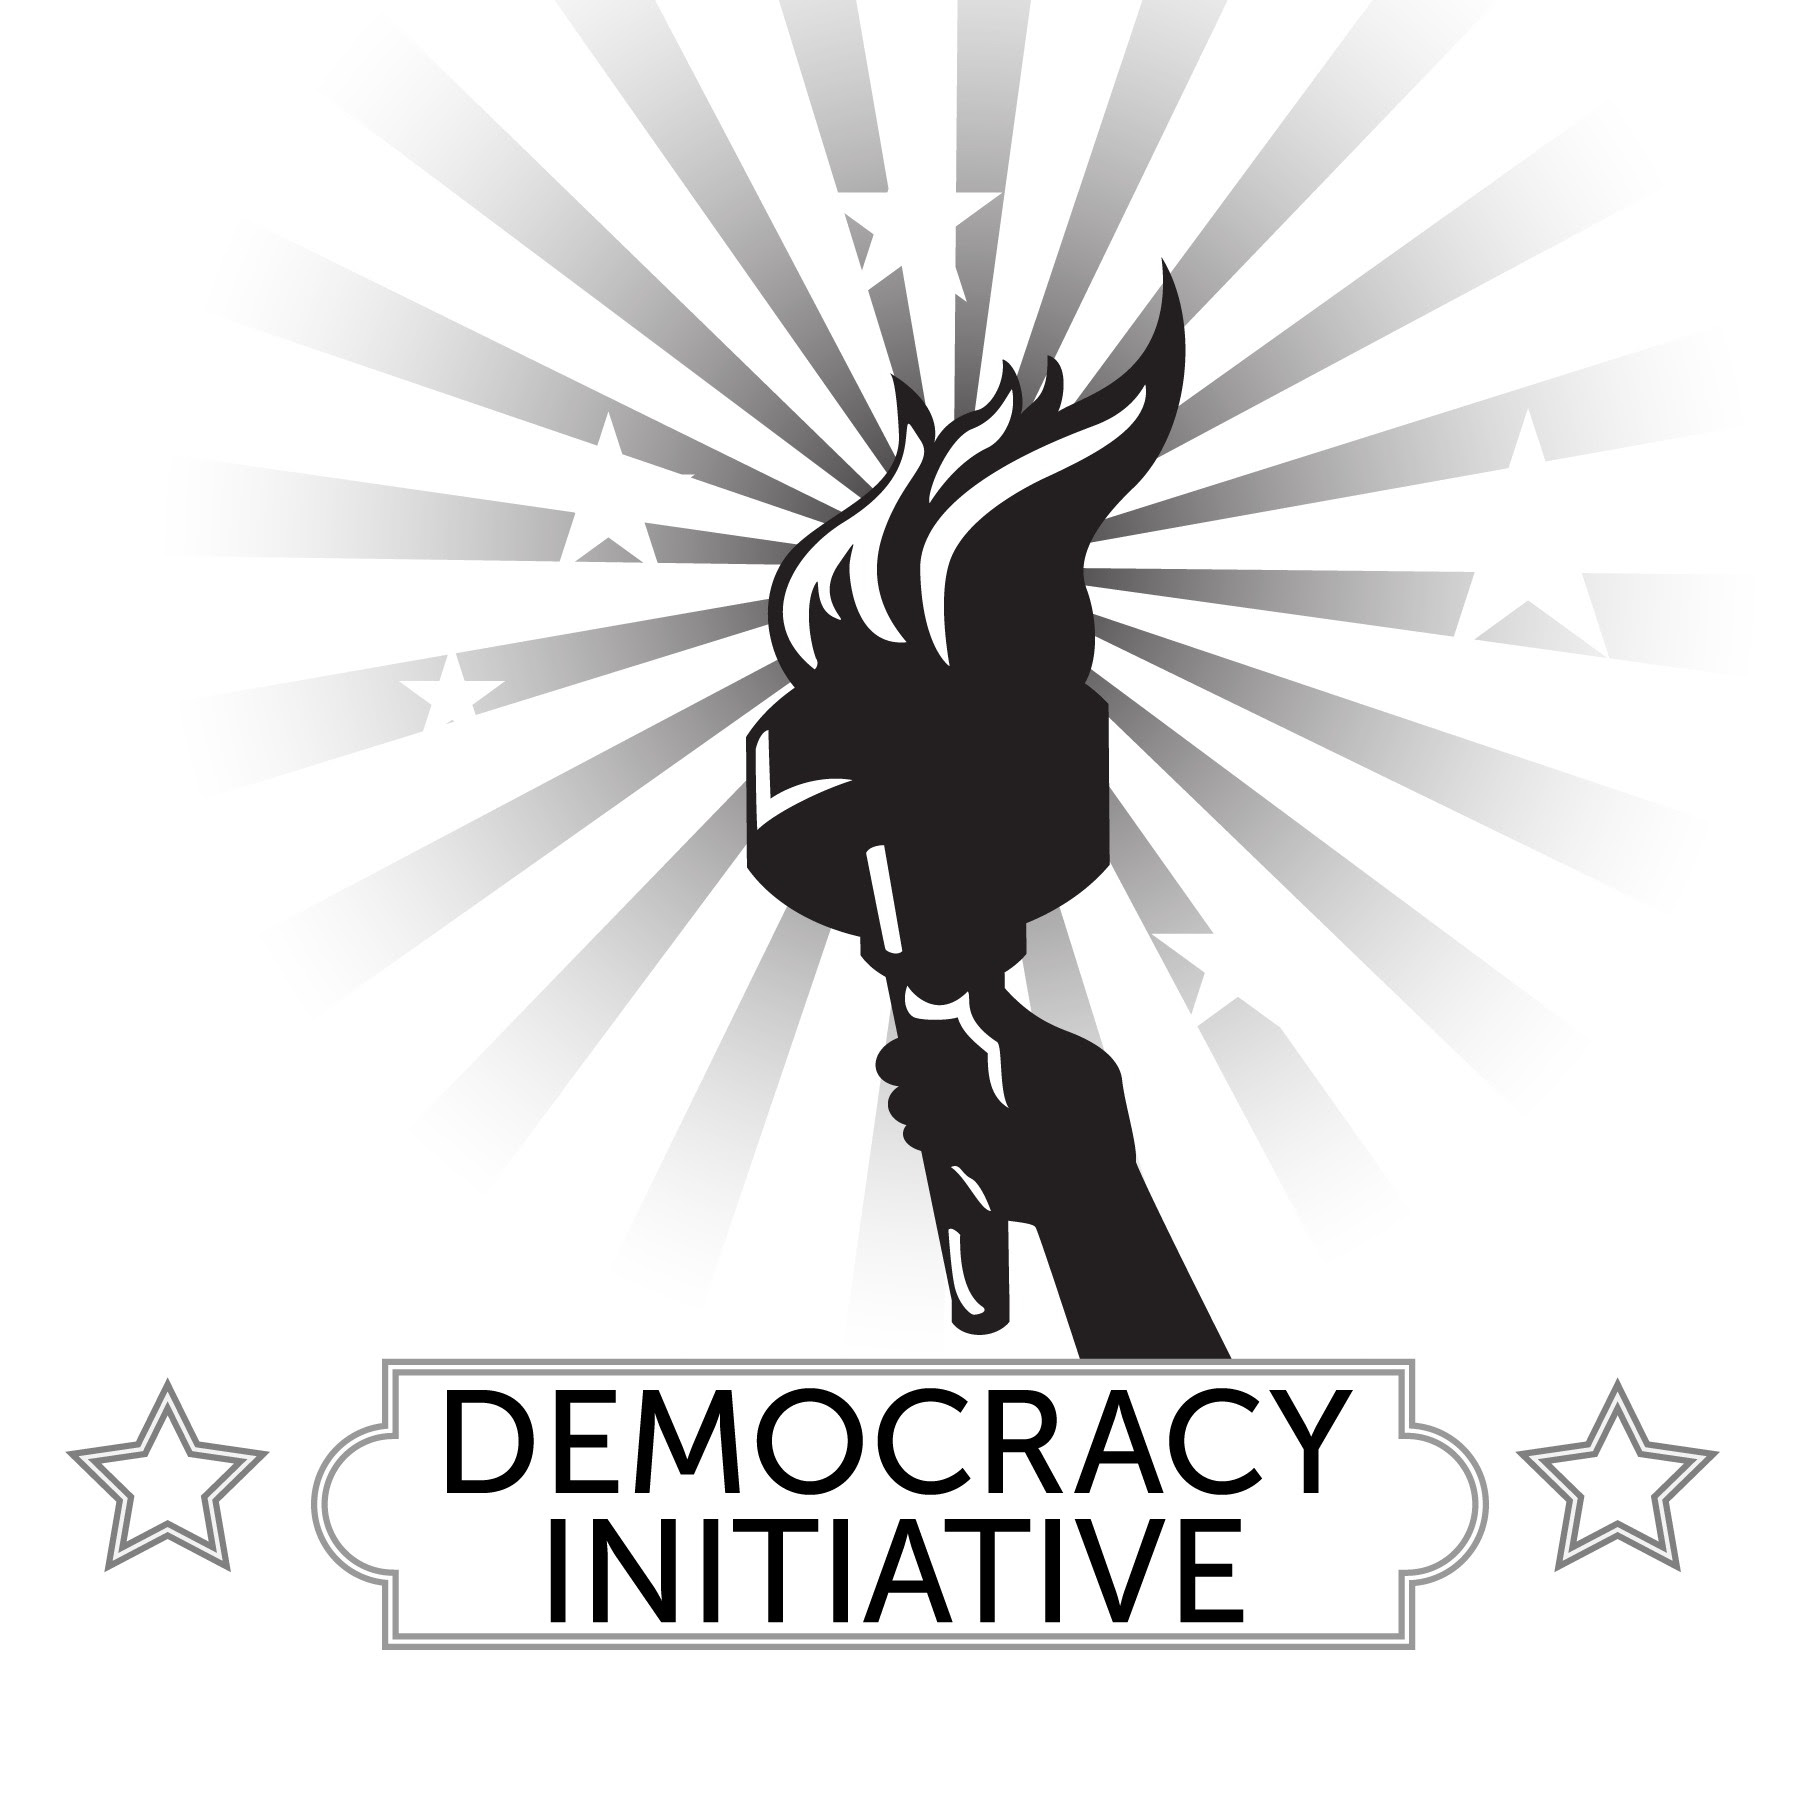 Democracy-Initiative-0.jpg